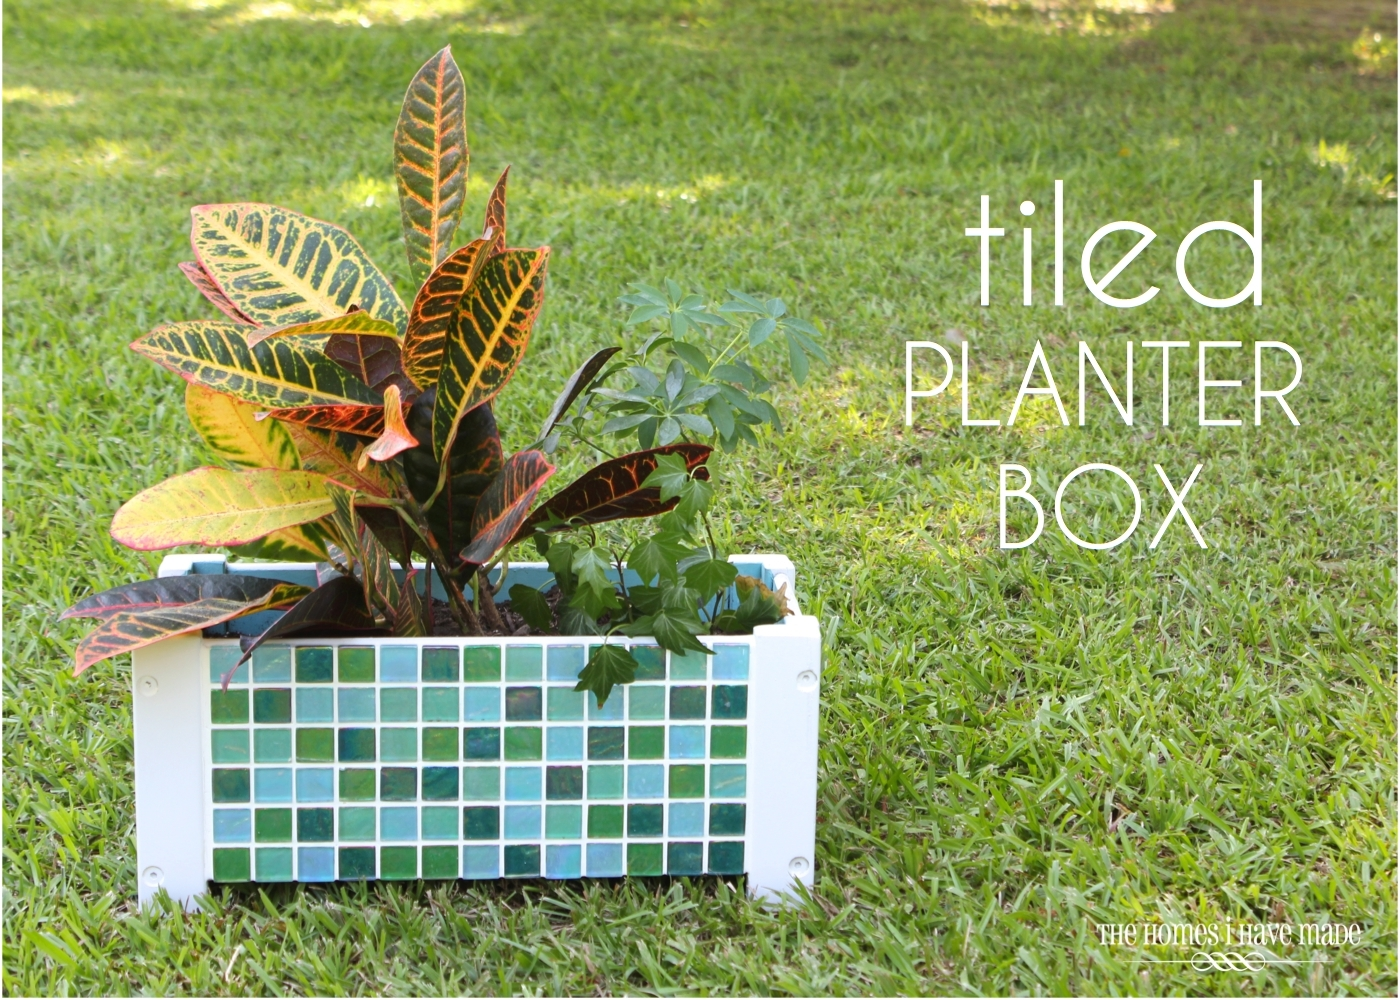 Tiled Planter Take 2-009